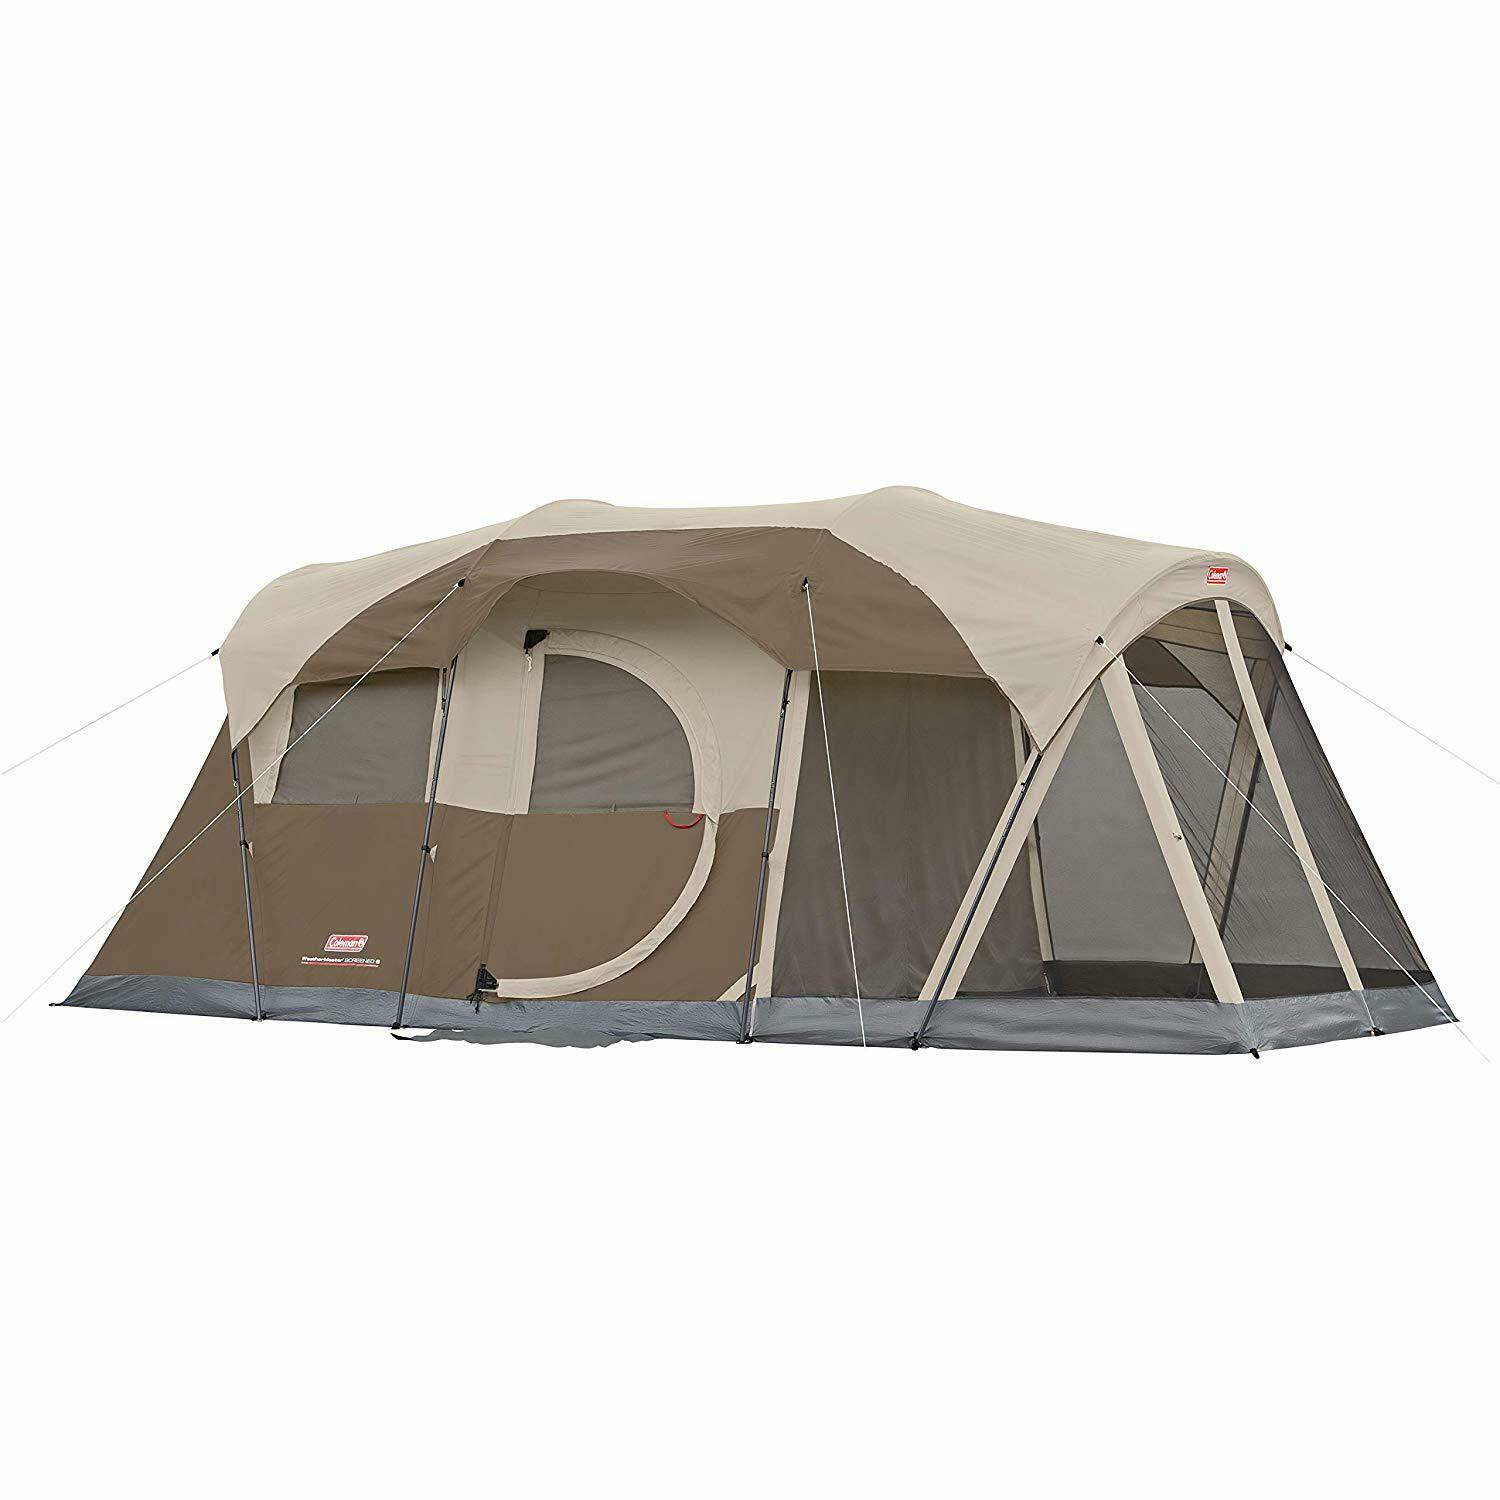 Coleman WeatherMaster 6-Person Tent with Screen Room fits 2 queen-Größe airbeds